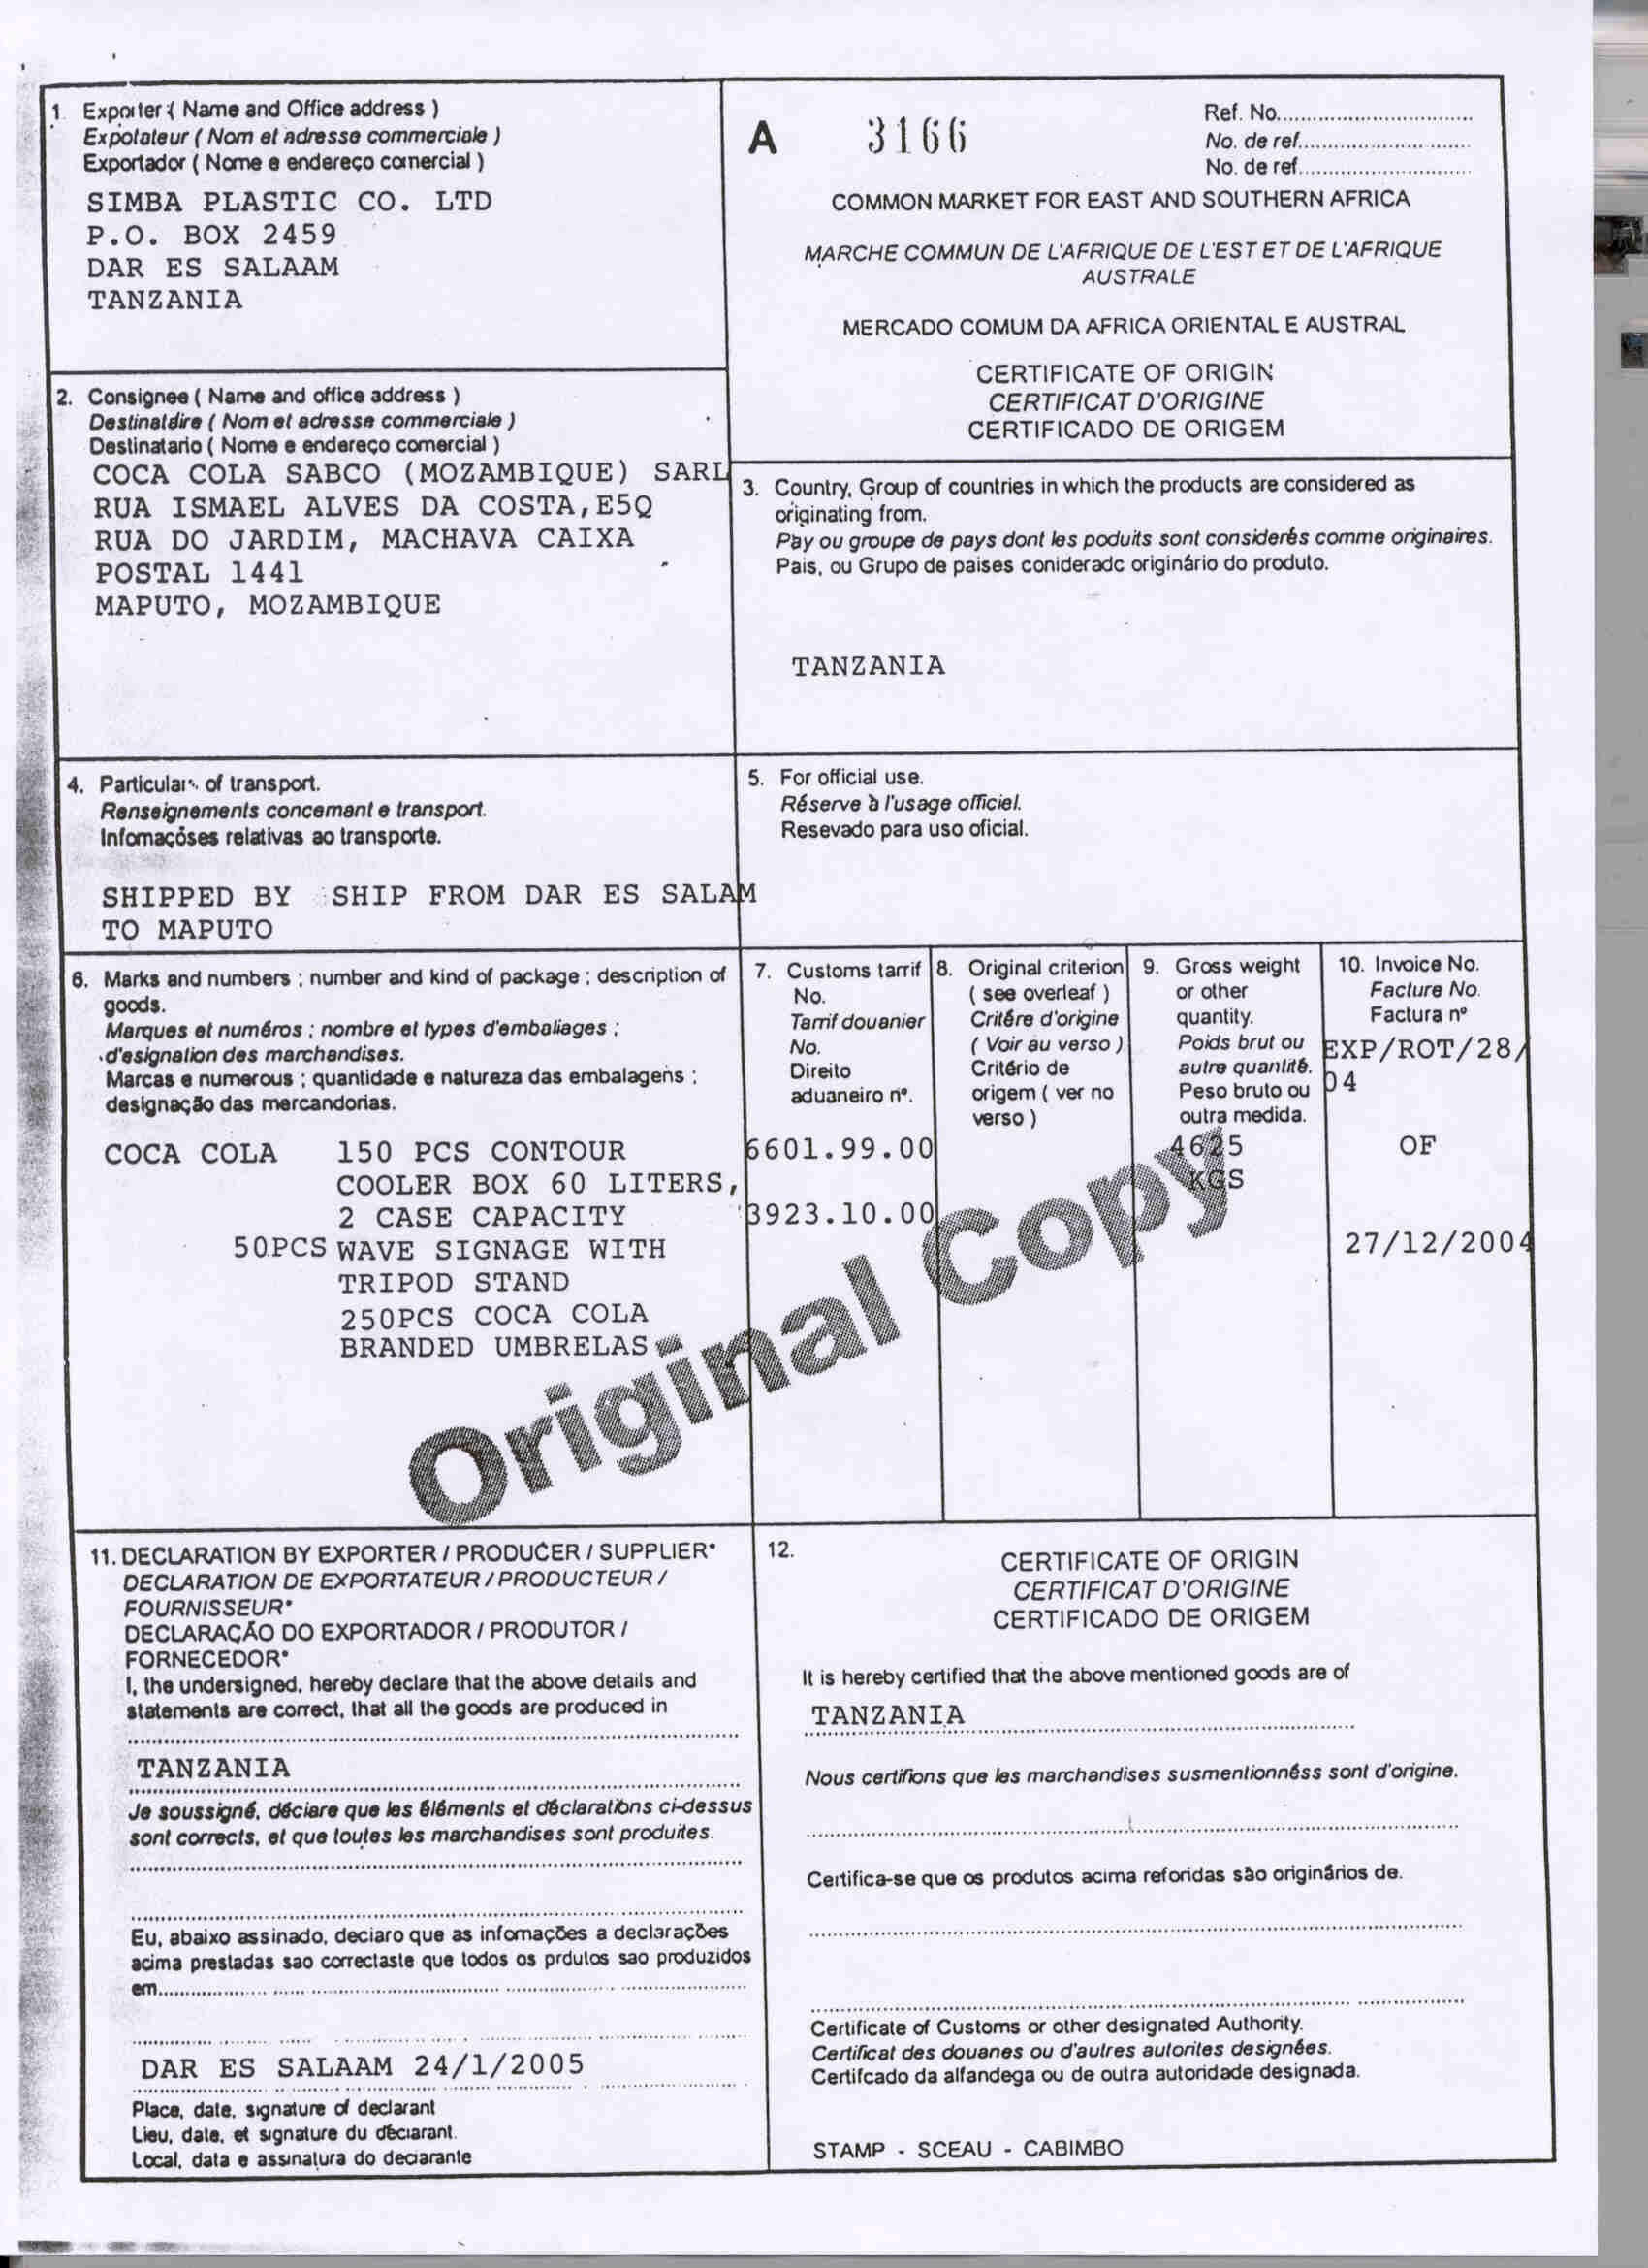 Best Solutions For Certificate Of Origin For A Vehicle Within Certificate Of Origin For A Vehicle Template